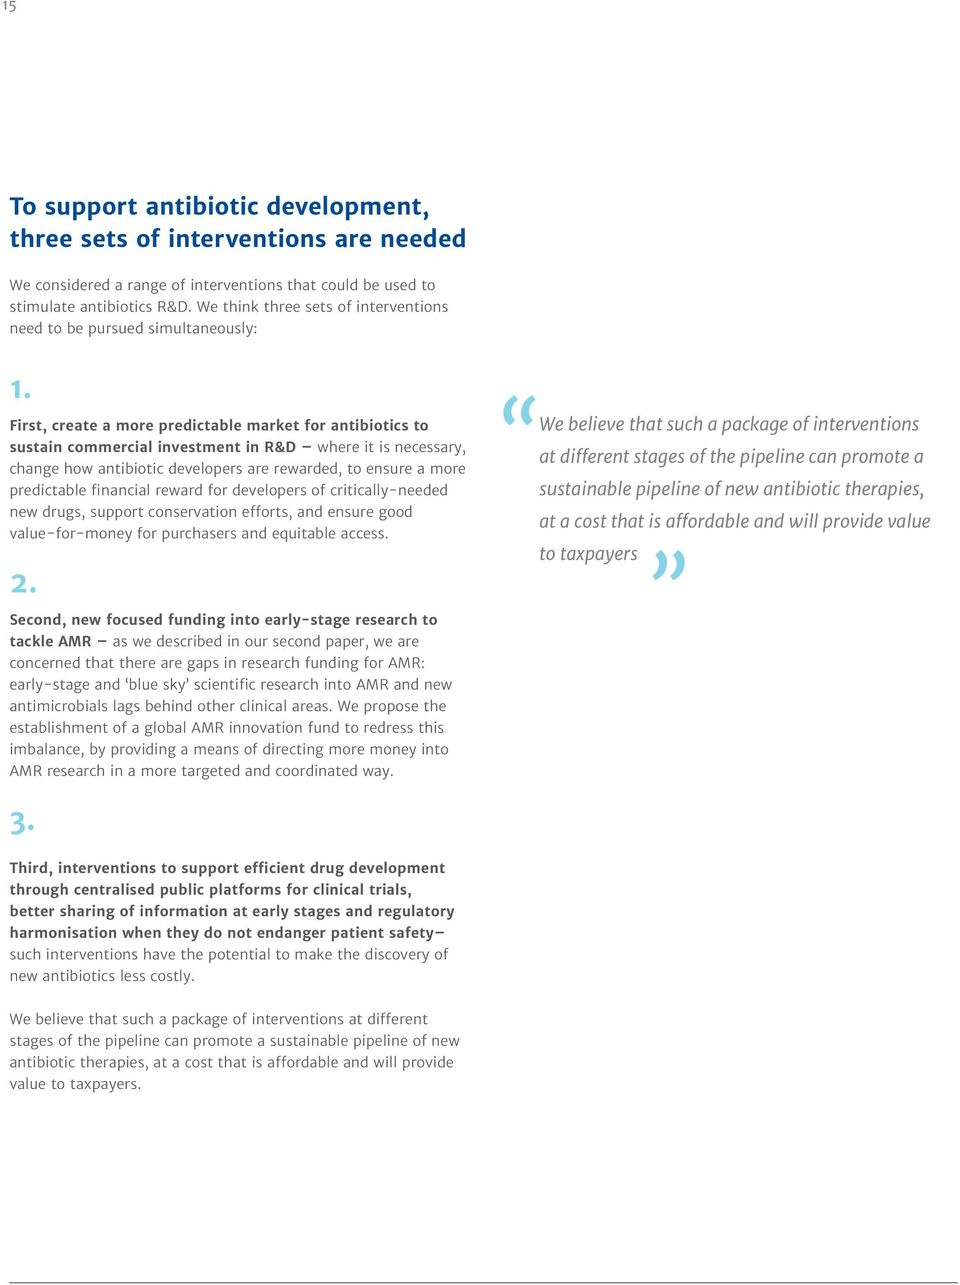 First, create a more predictable market for antibiotics to sustain commercial investment in R&D where it is necessary, change how antibiotic developers are rewarded, to ensure a more predictable